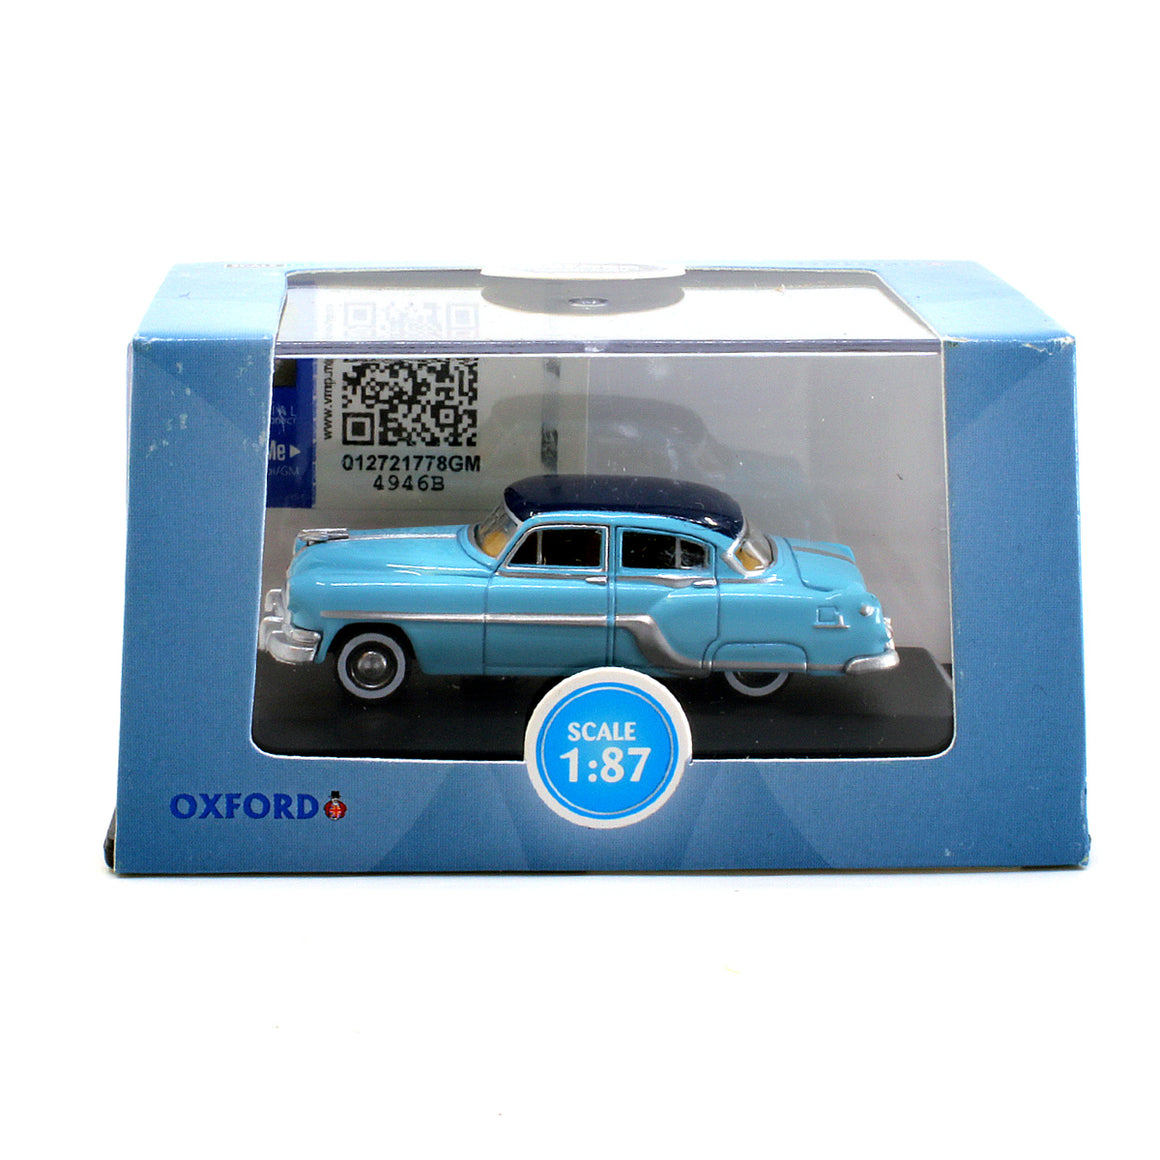 HO Scale: 1954 Pontiac Chieftan - Mayfair Blue / San Marino Blue